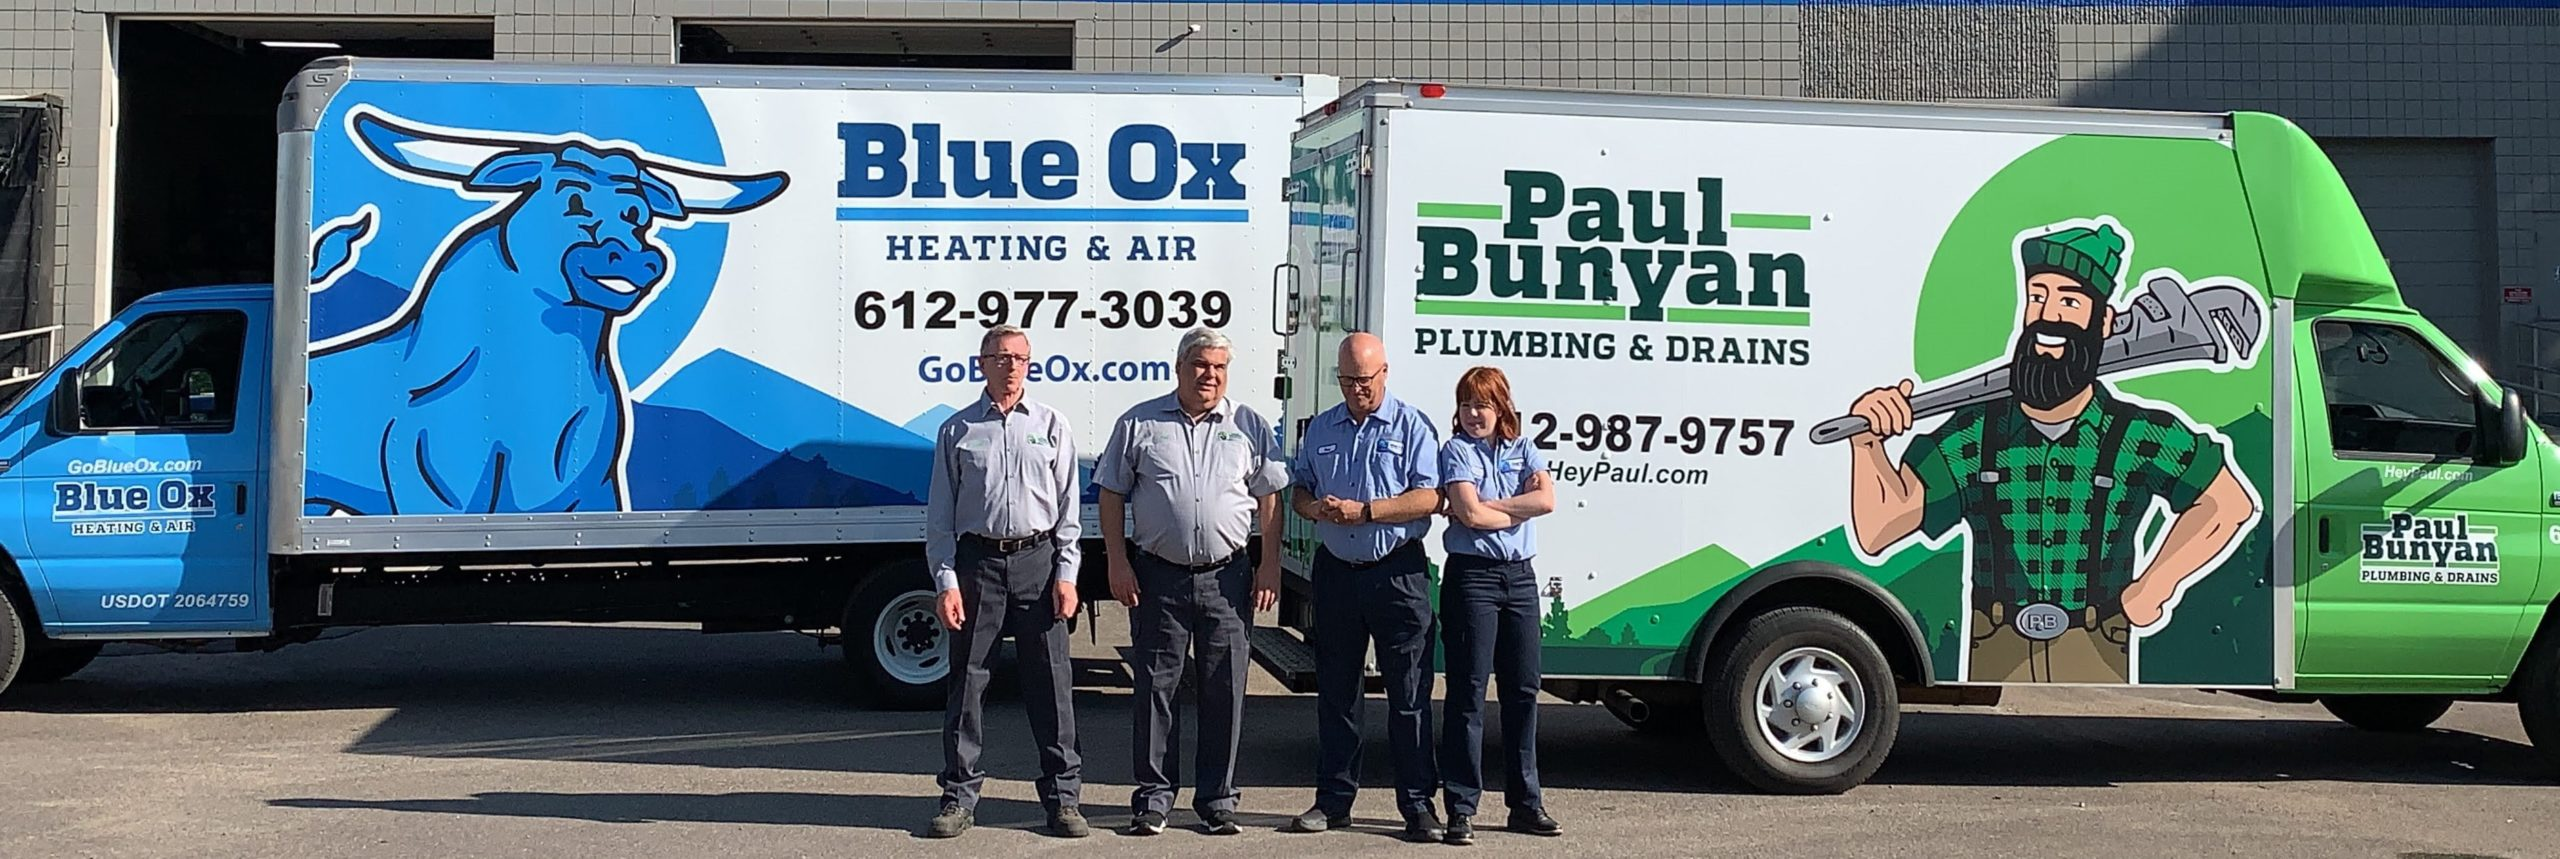 Blue Ox Heating and Air-